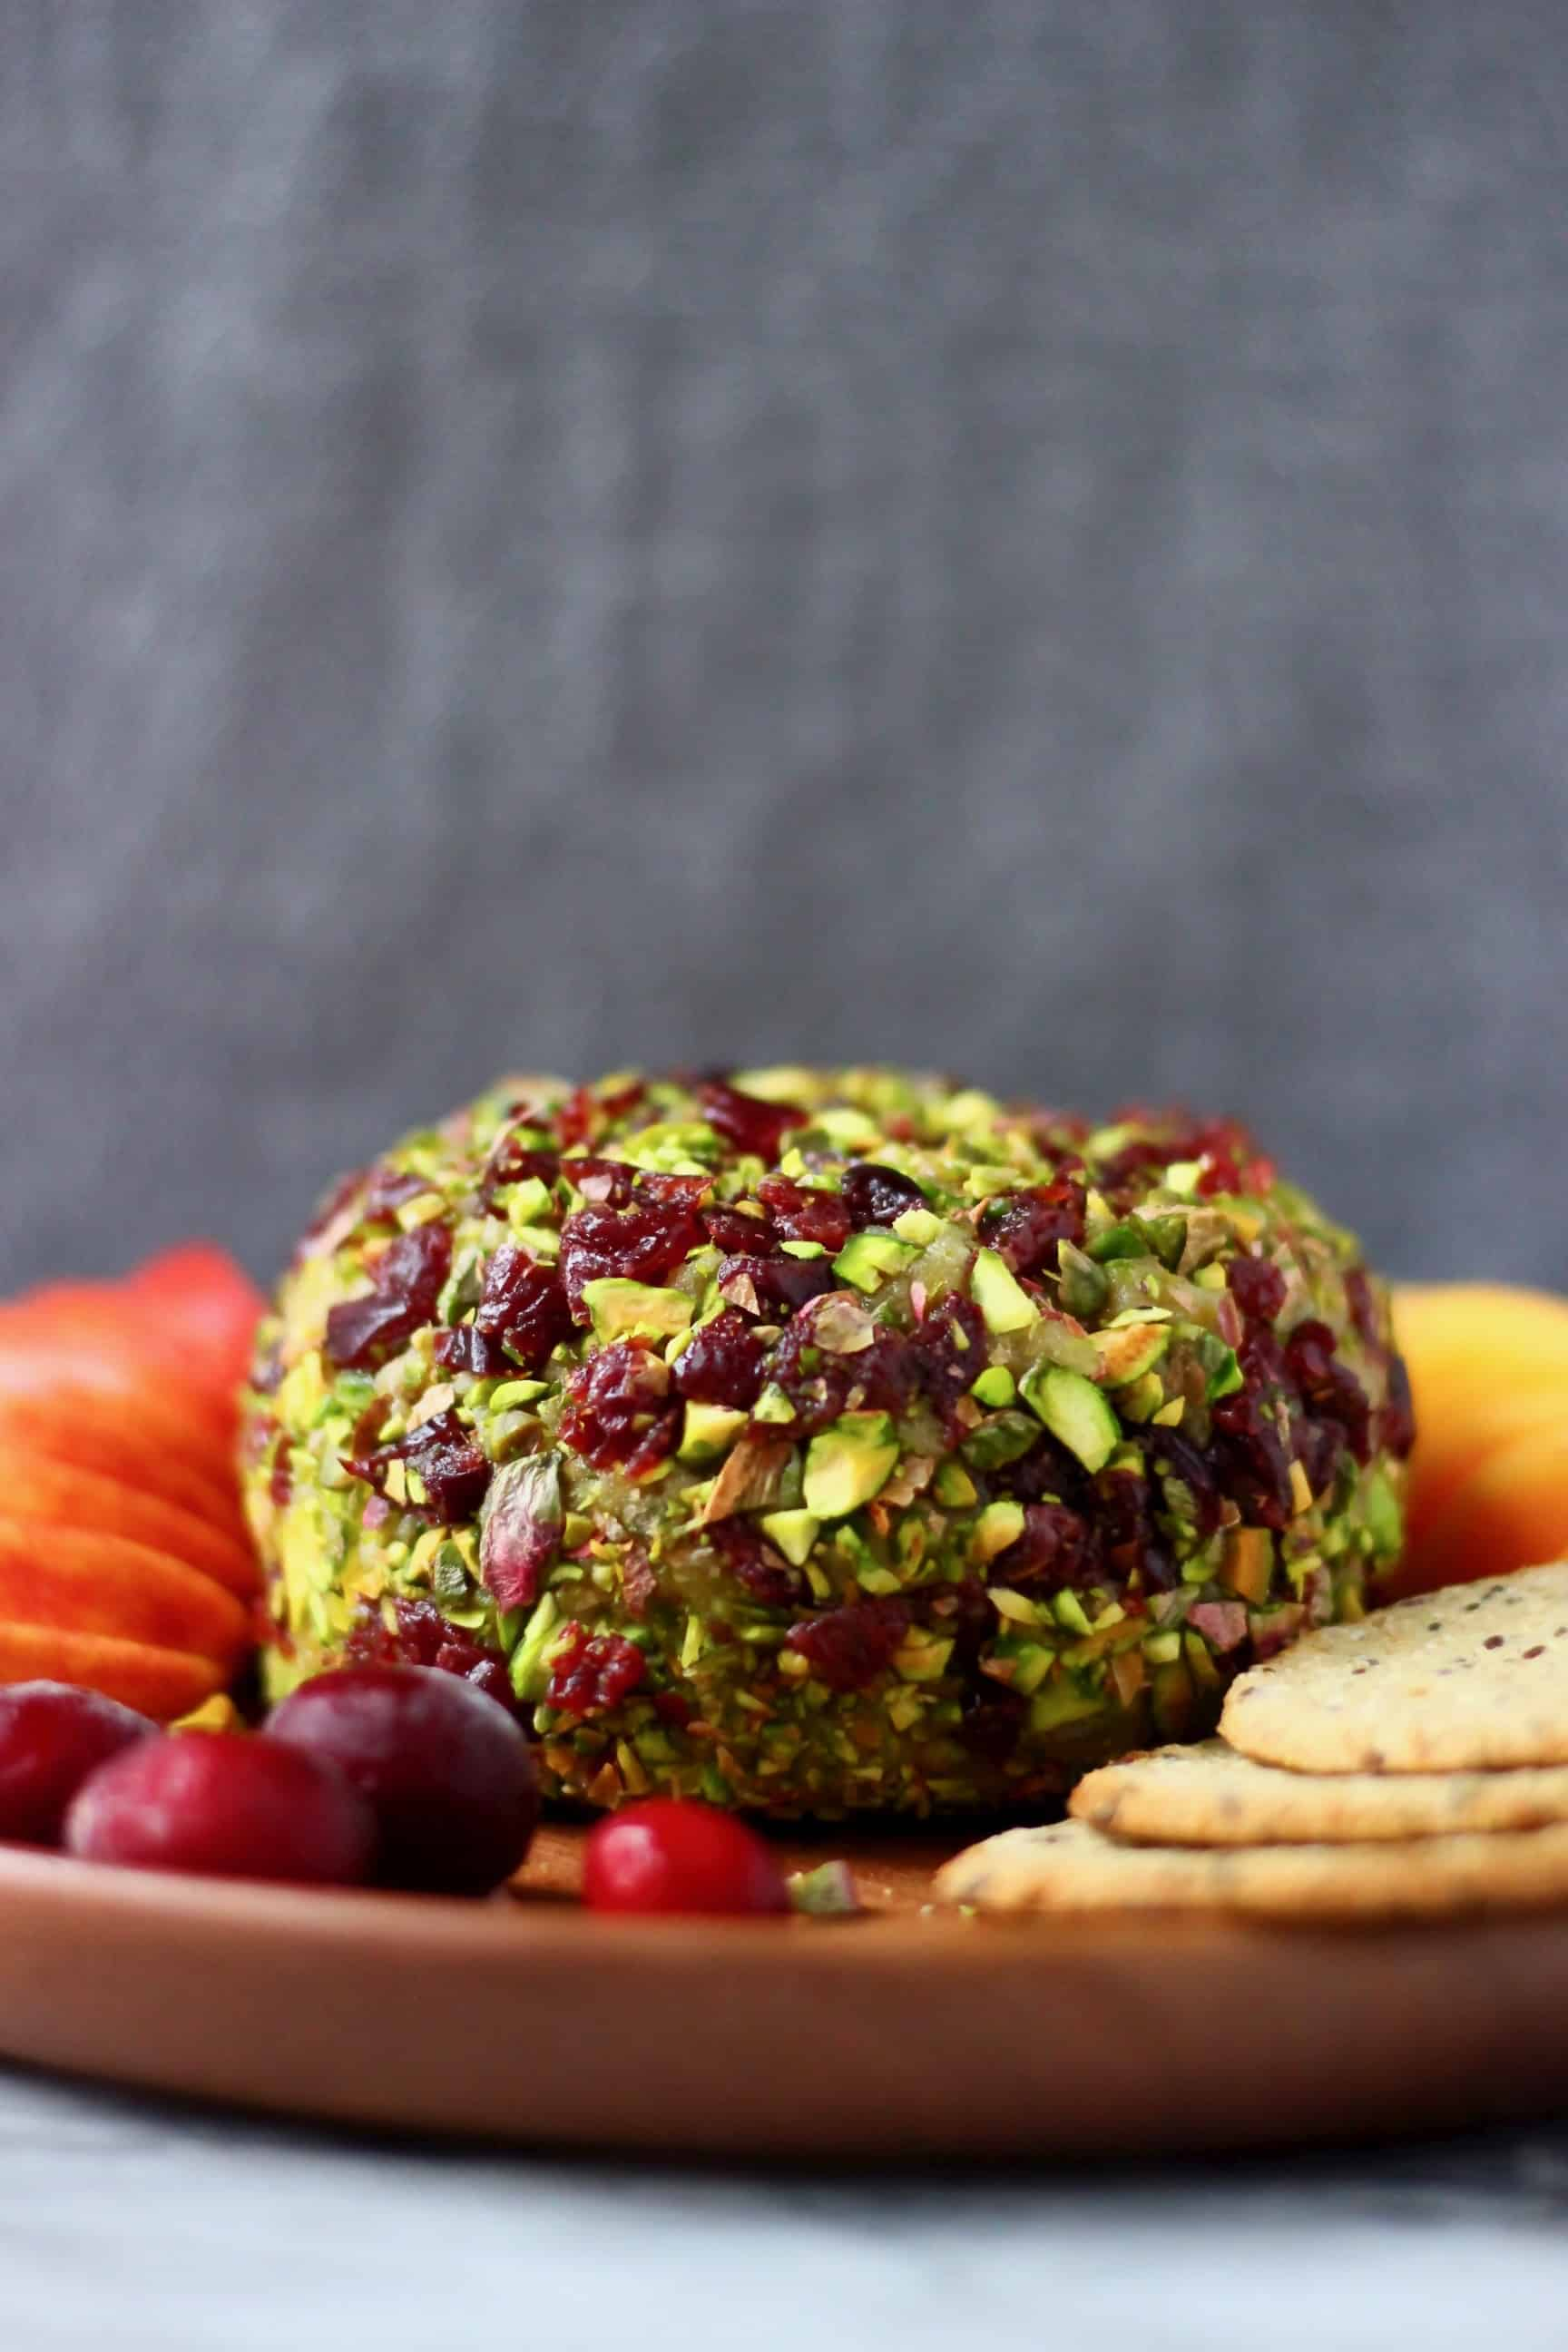 A ball of cashew cheese covered with chopped pistachios and dried cranberries on a wooden plate with sliced apples, oatcakes and fresh cranberries against a grey background